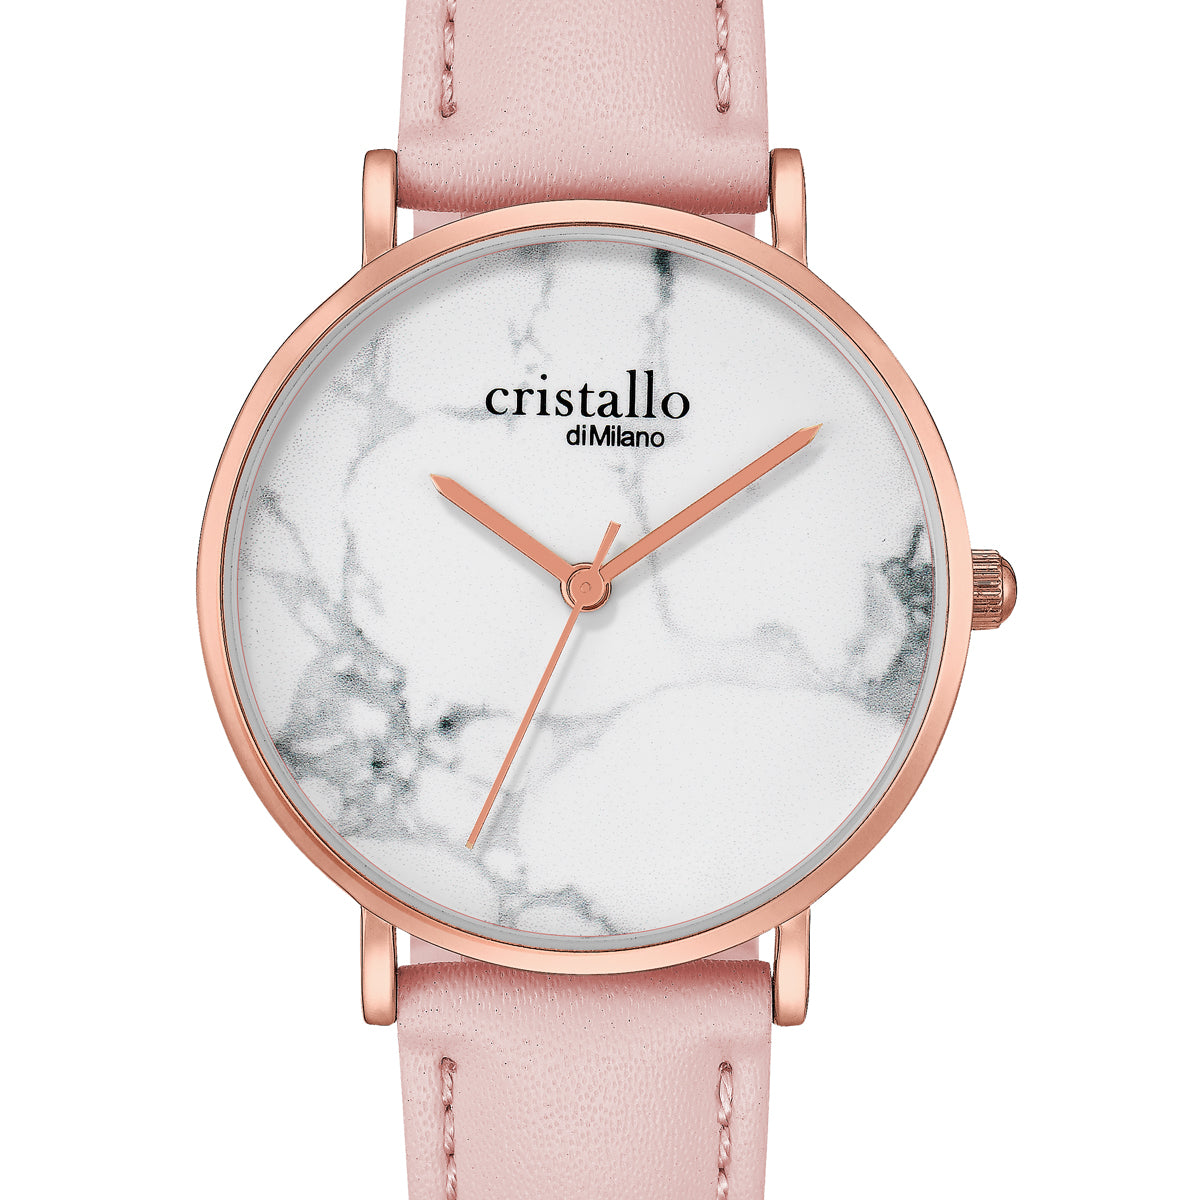 Little Roche Marble Pink on White in Rose Gold Watch